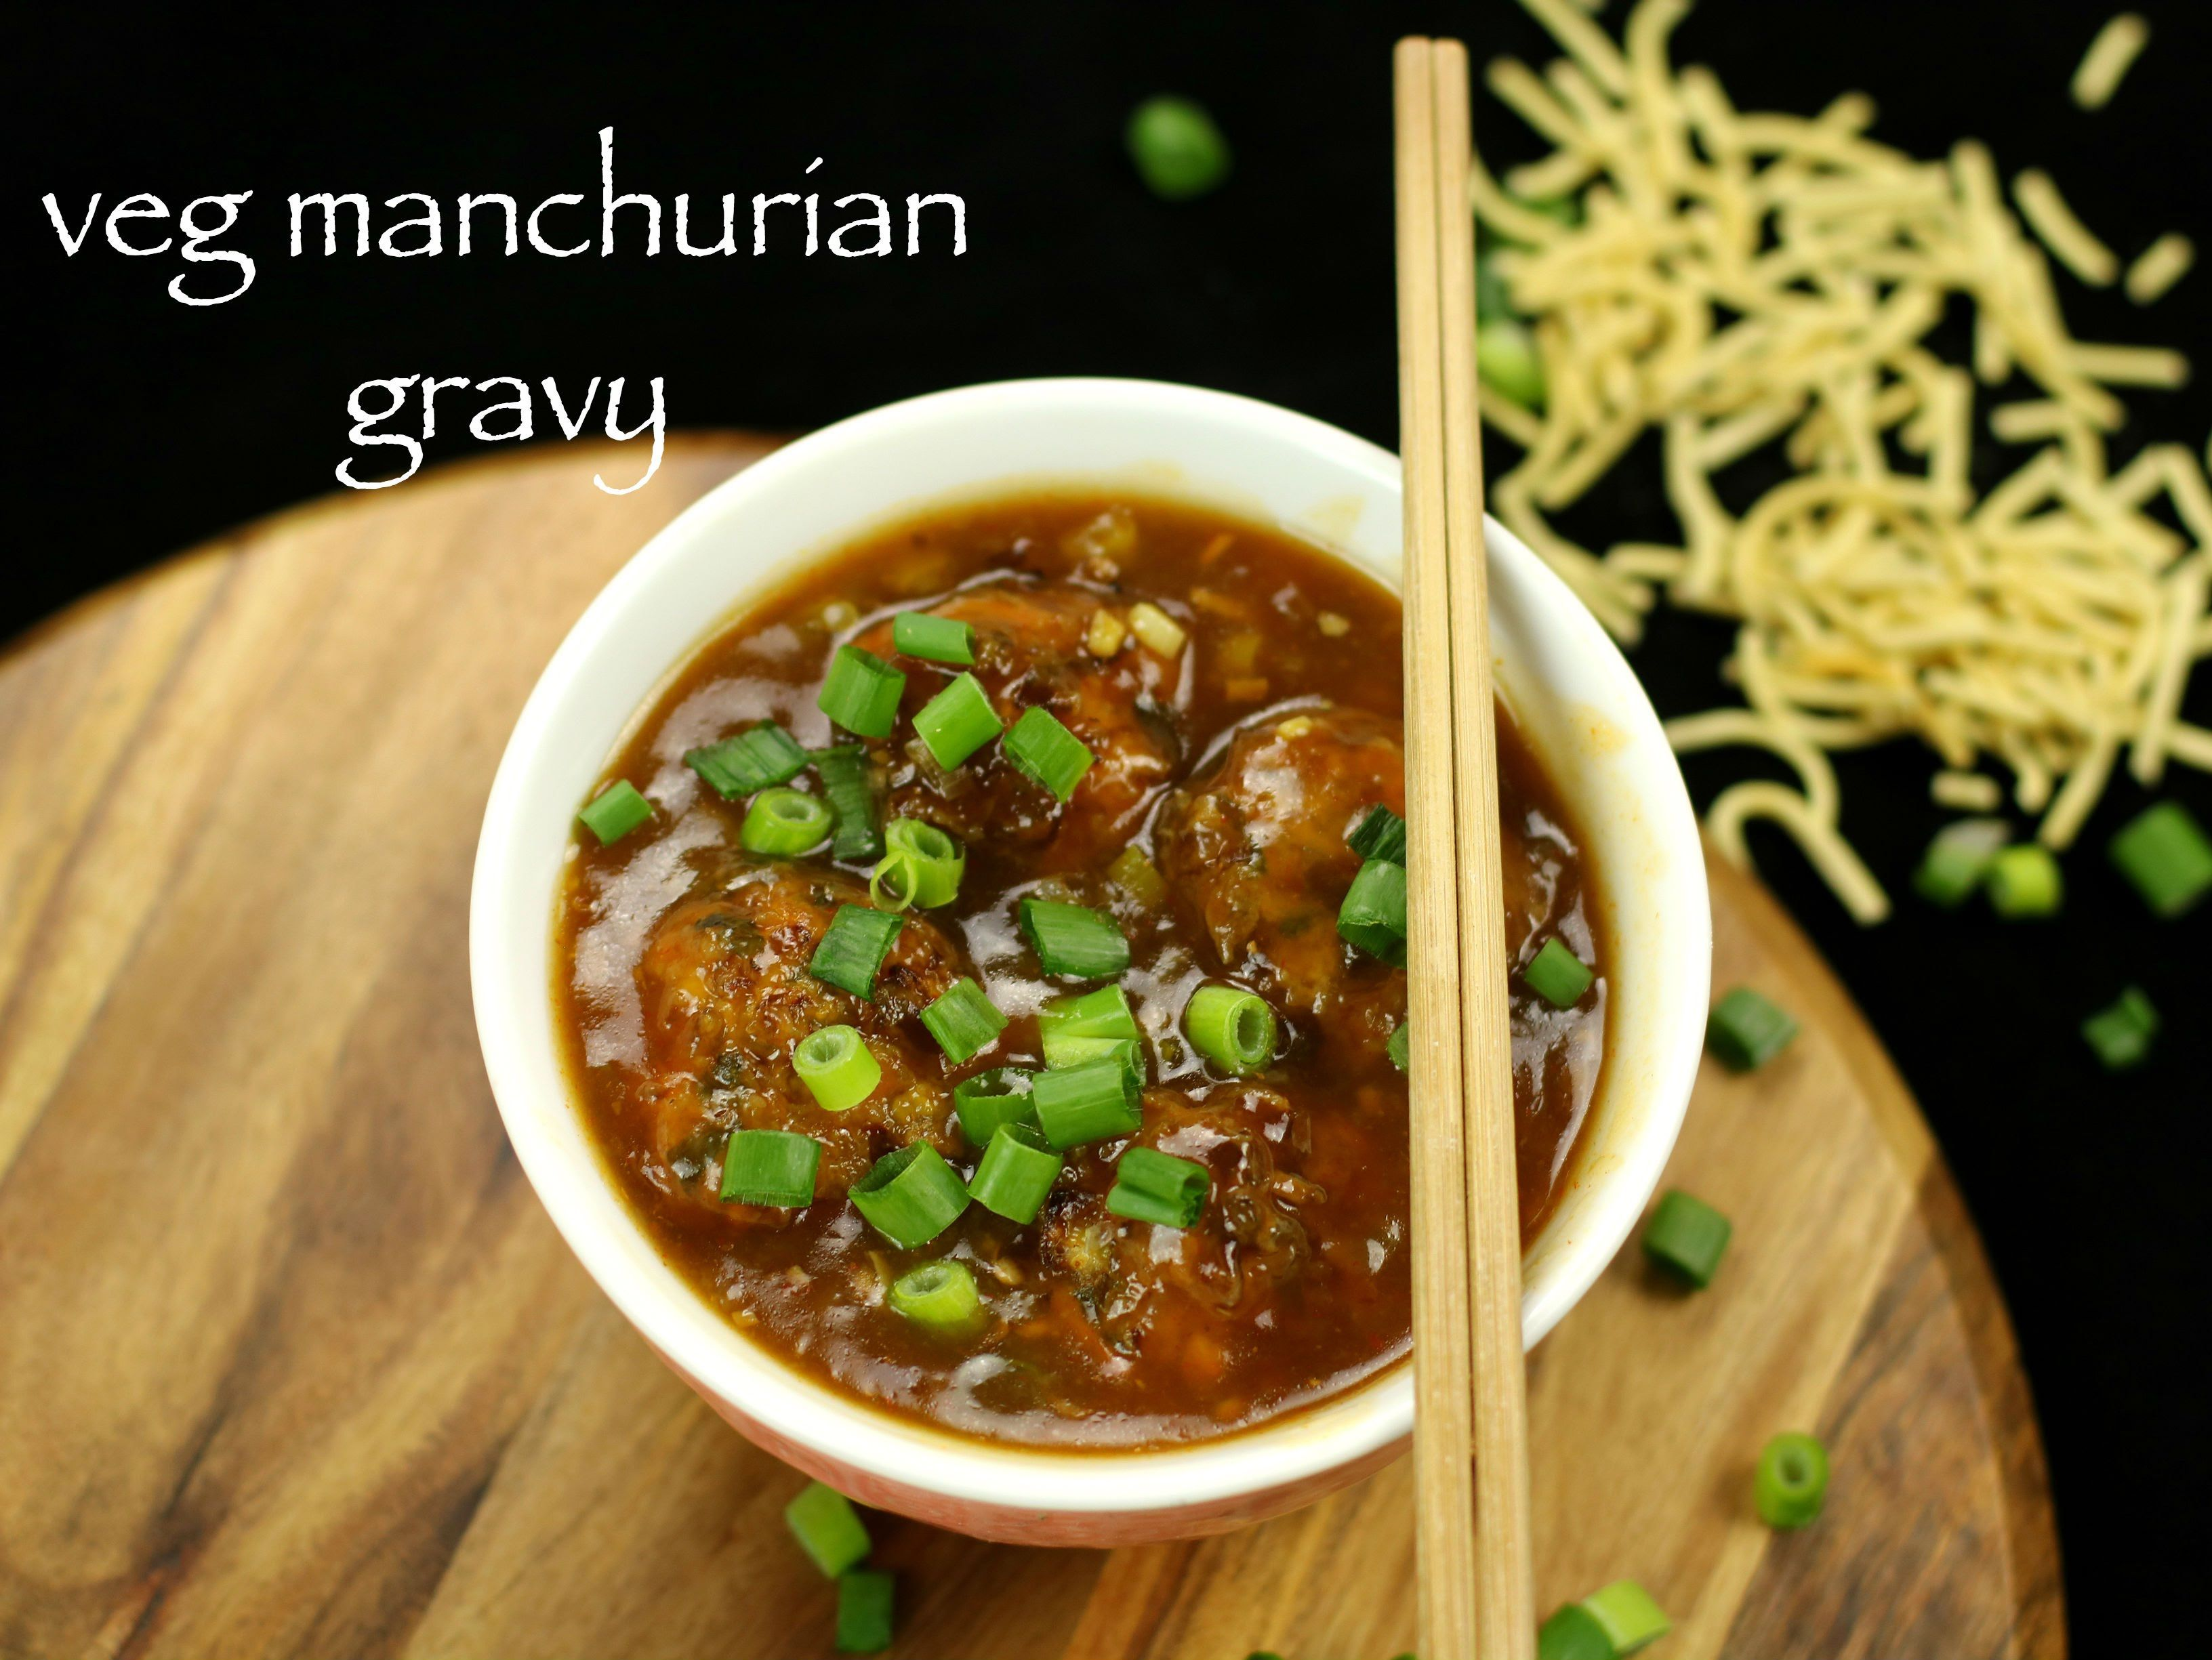 Veg manchurian gravy recipe vegetable manchurian gravy recipe veg manchurian gravy recipe vegetable manchurian gravy recipe with step by step photovideo recipe a popular indo chinese indian street food cuisine forumfinder Choice Image